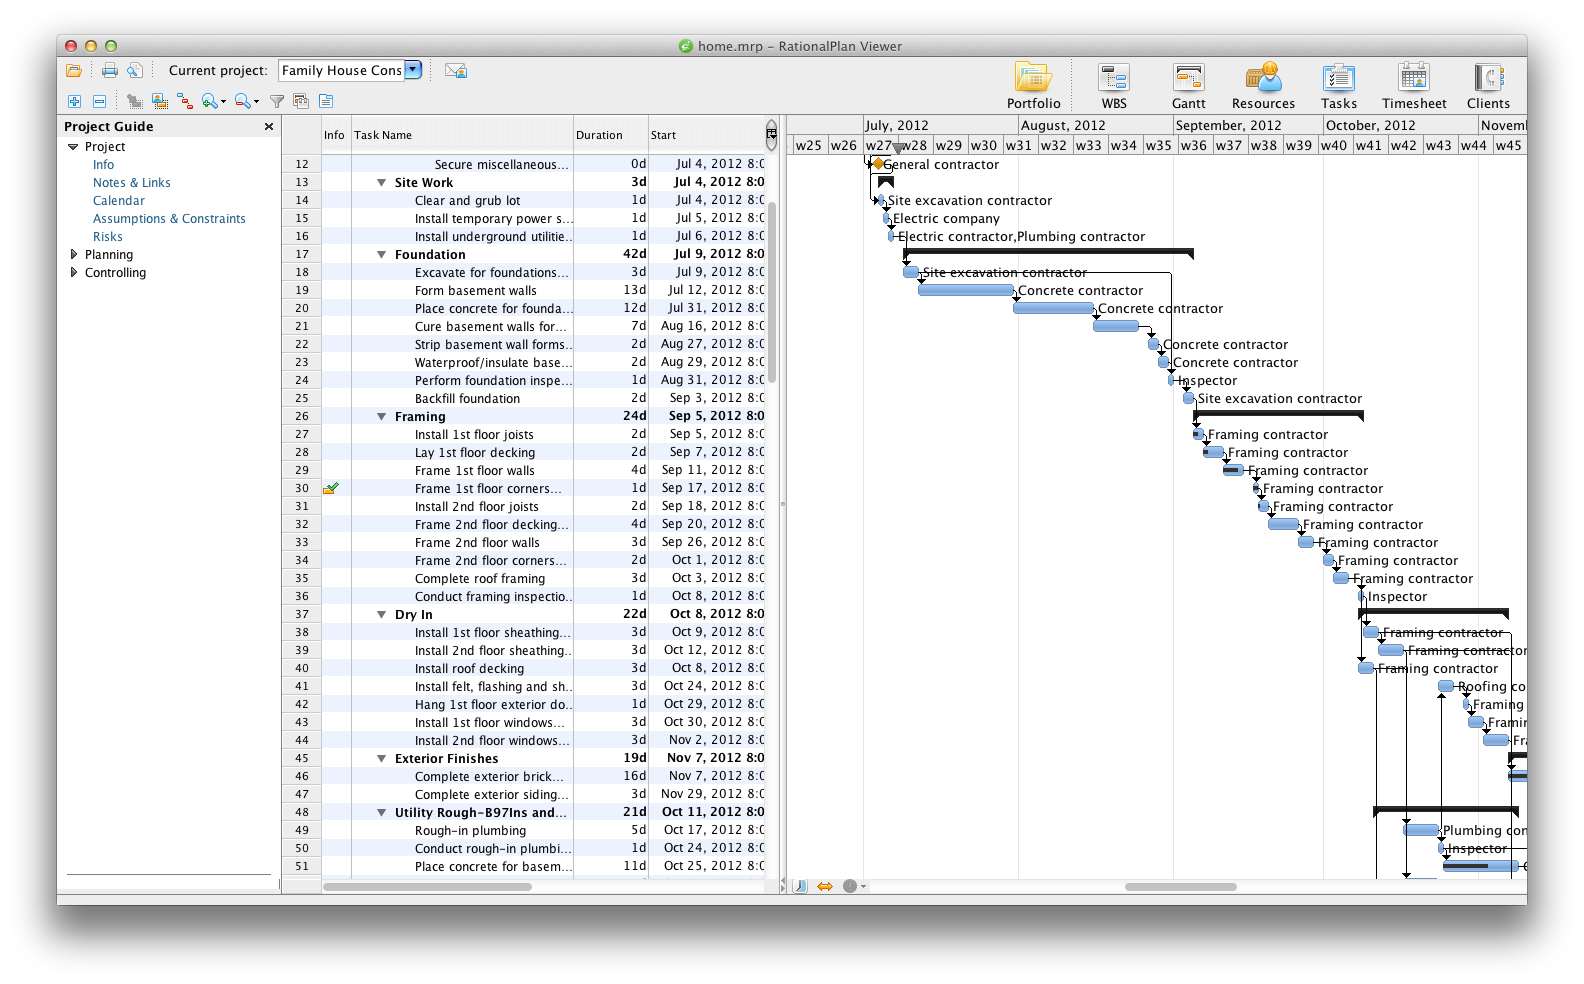 RationalPlan Project Viewer for Mac 5.0.7699